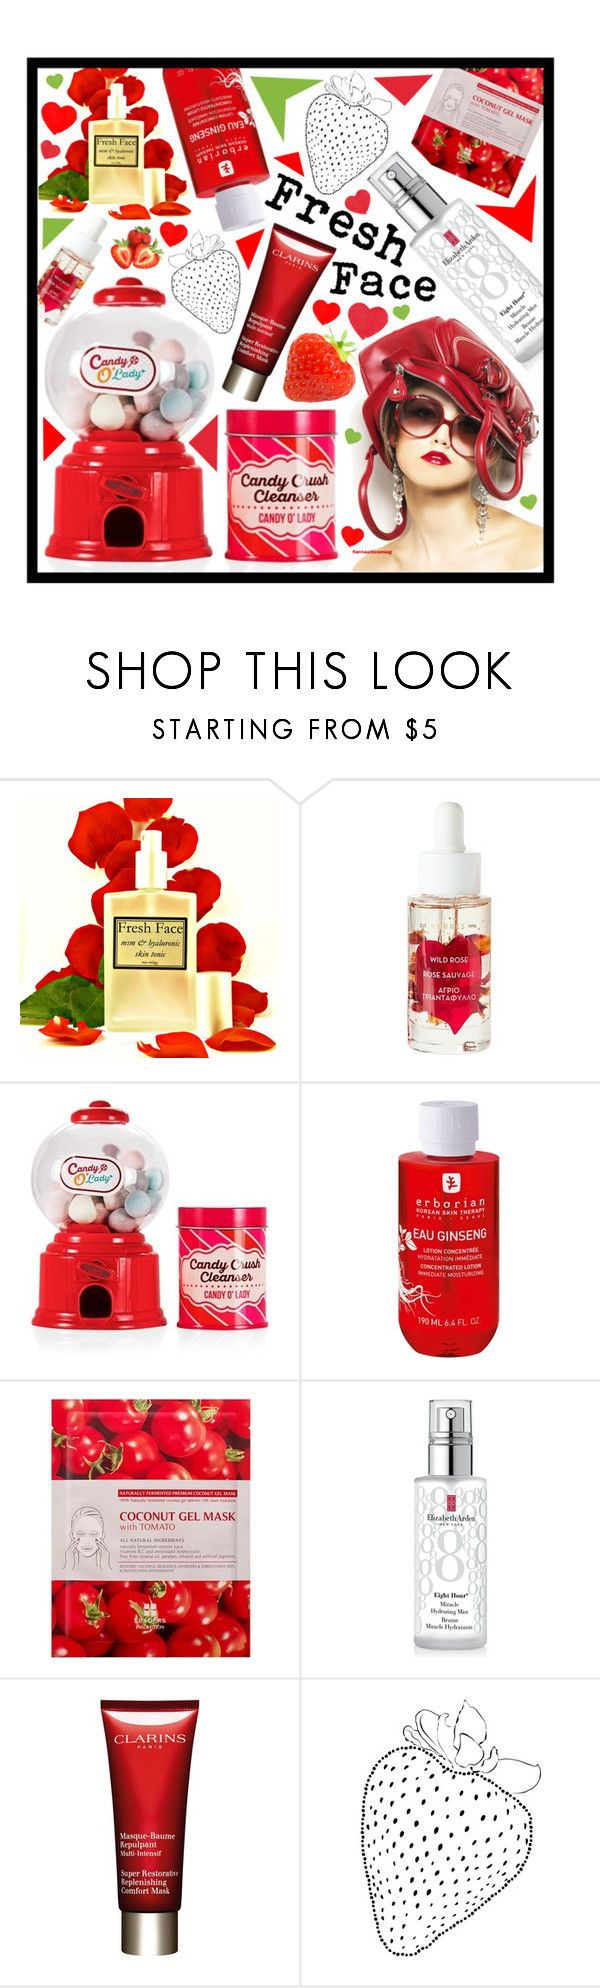 """""""Fresh face"""" by beanpod ❤ liked on Polyvore featuring beauty, Forever 21, Erborian, Elizabeth Arden, Clarins, Summer, red, fresh and skincare"""